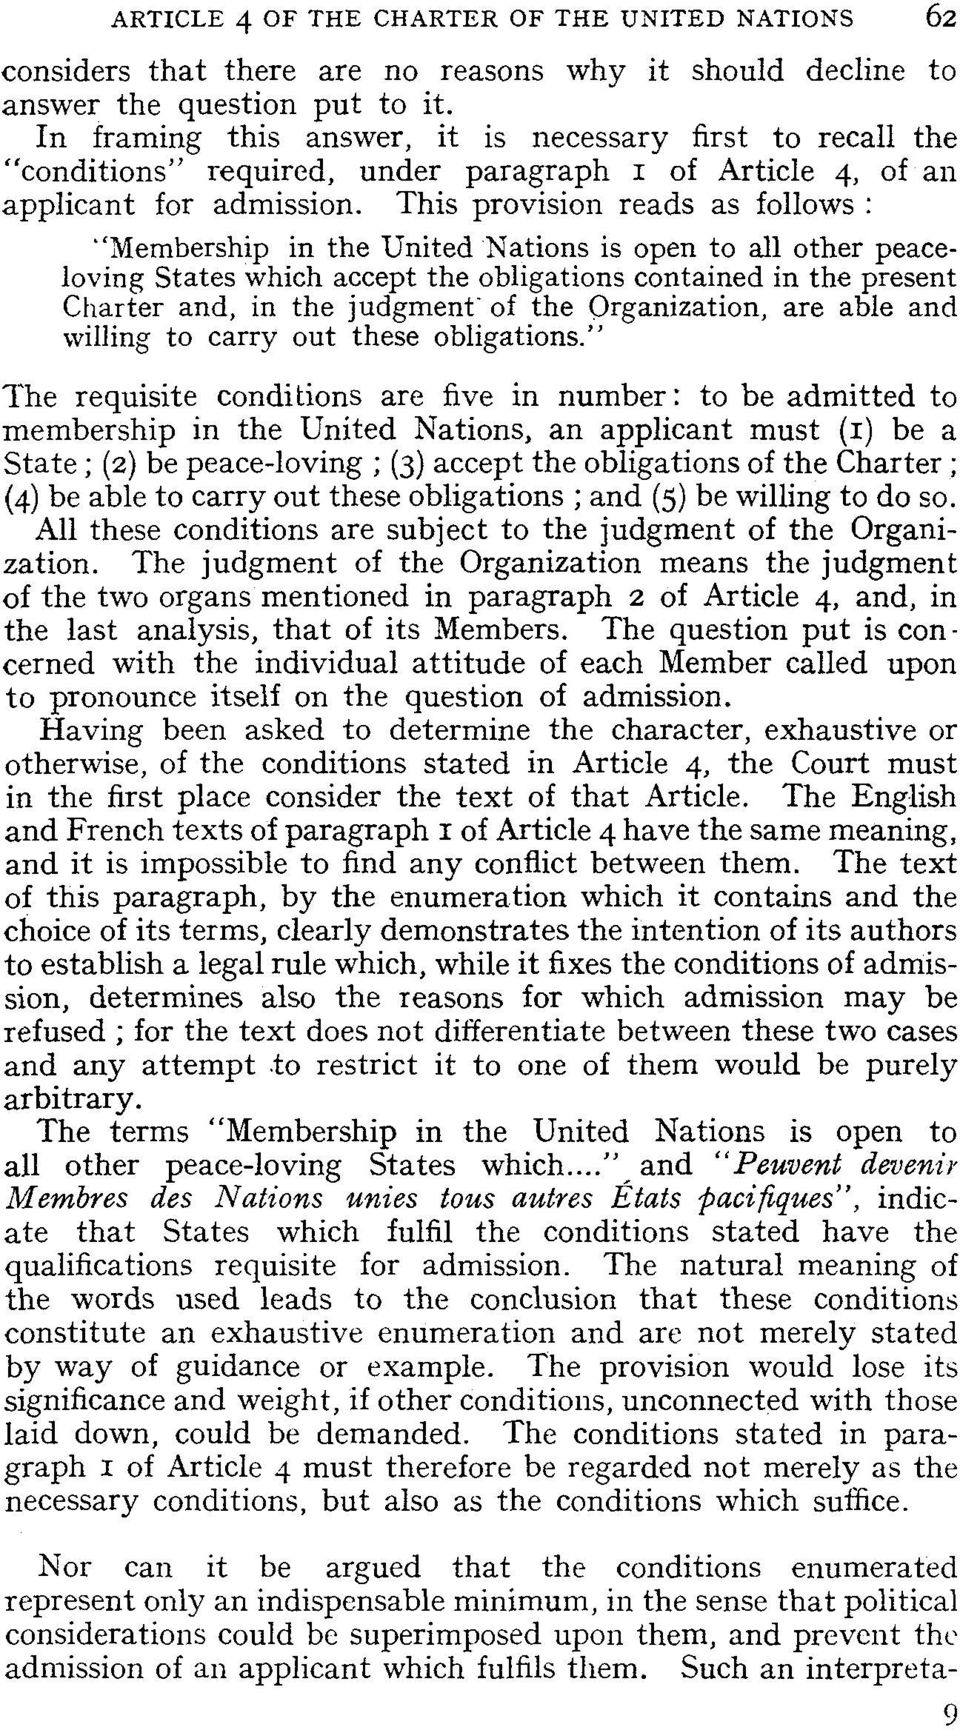 "This provision reads as follows : ""Membership in the United Nations is open to al1 other peaceloving States which accept the obligations contained in the present Charter and, in the judgment' of the"